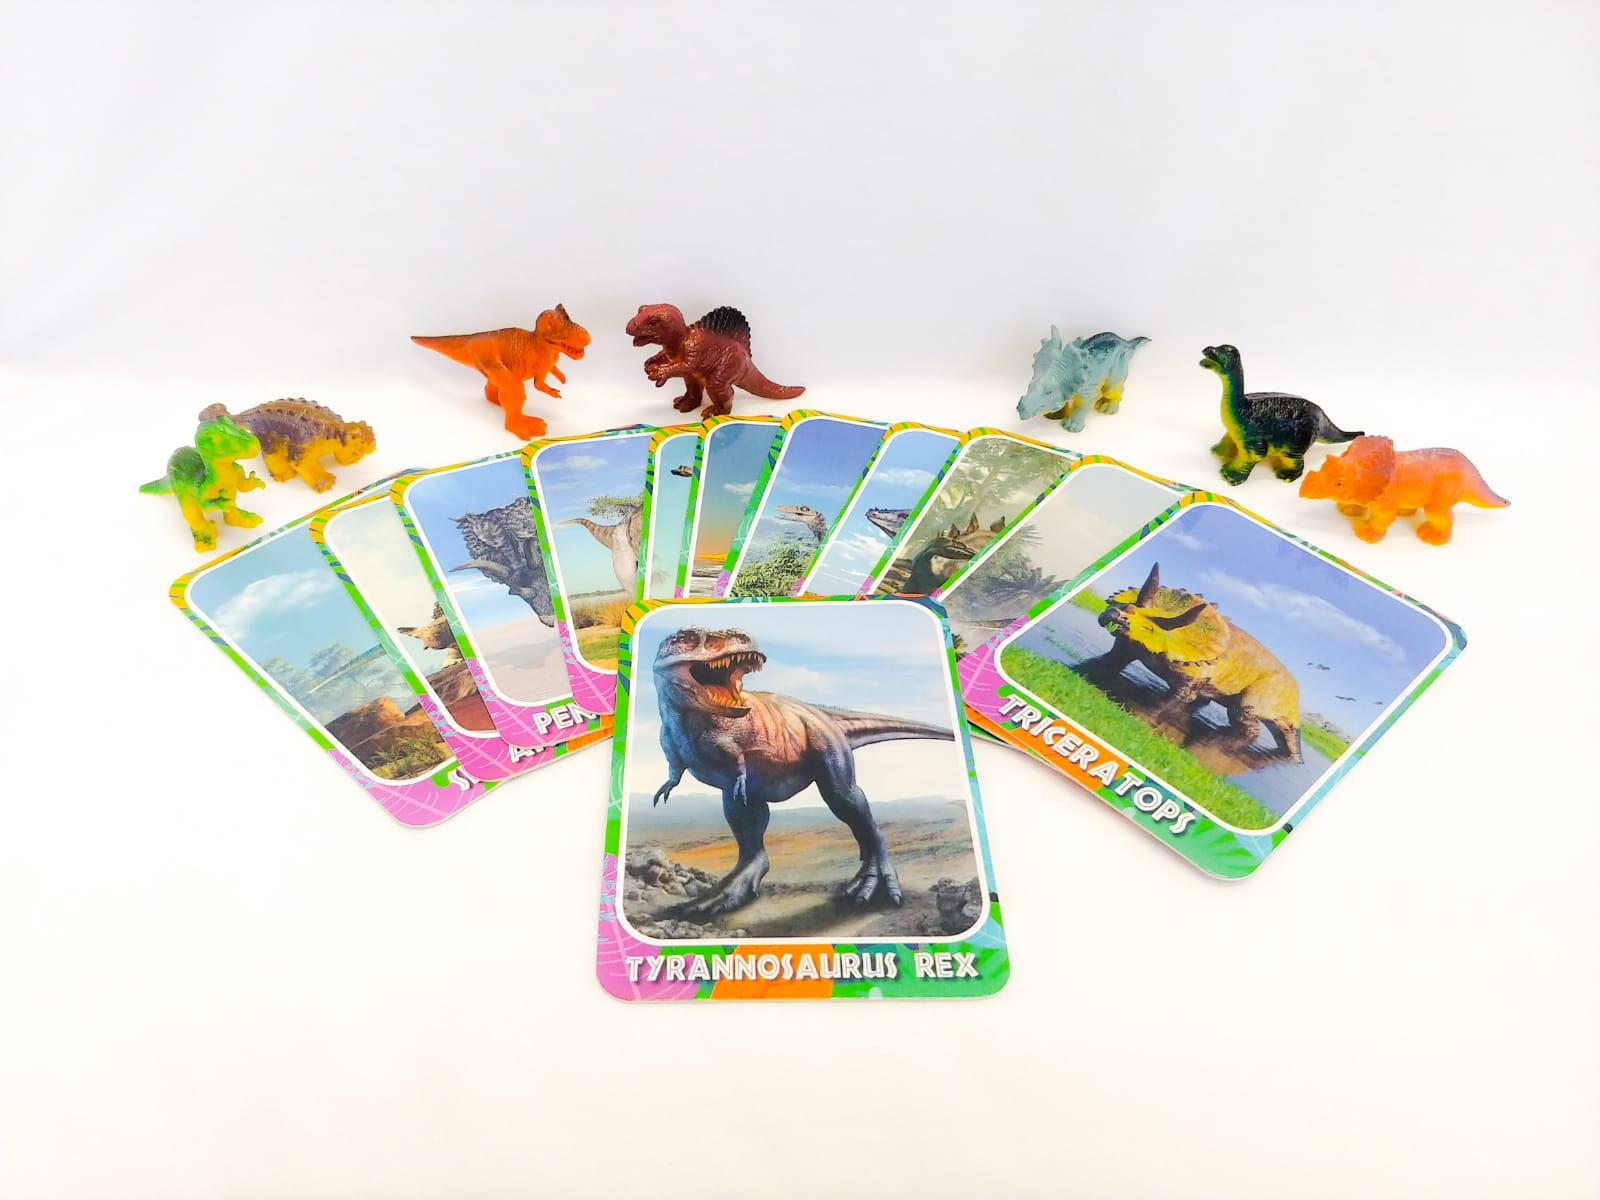 Dinosaurs figurines and dinosaur cards